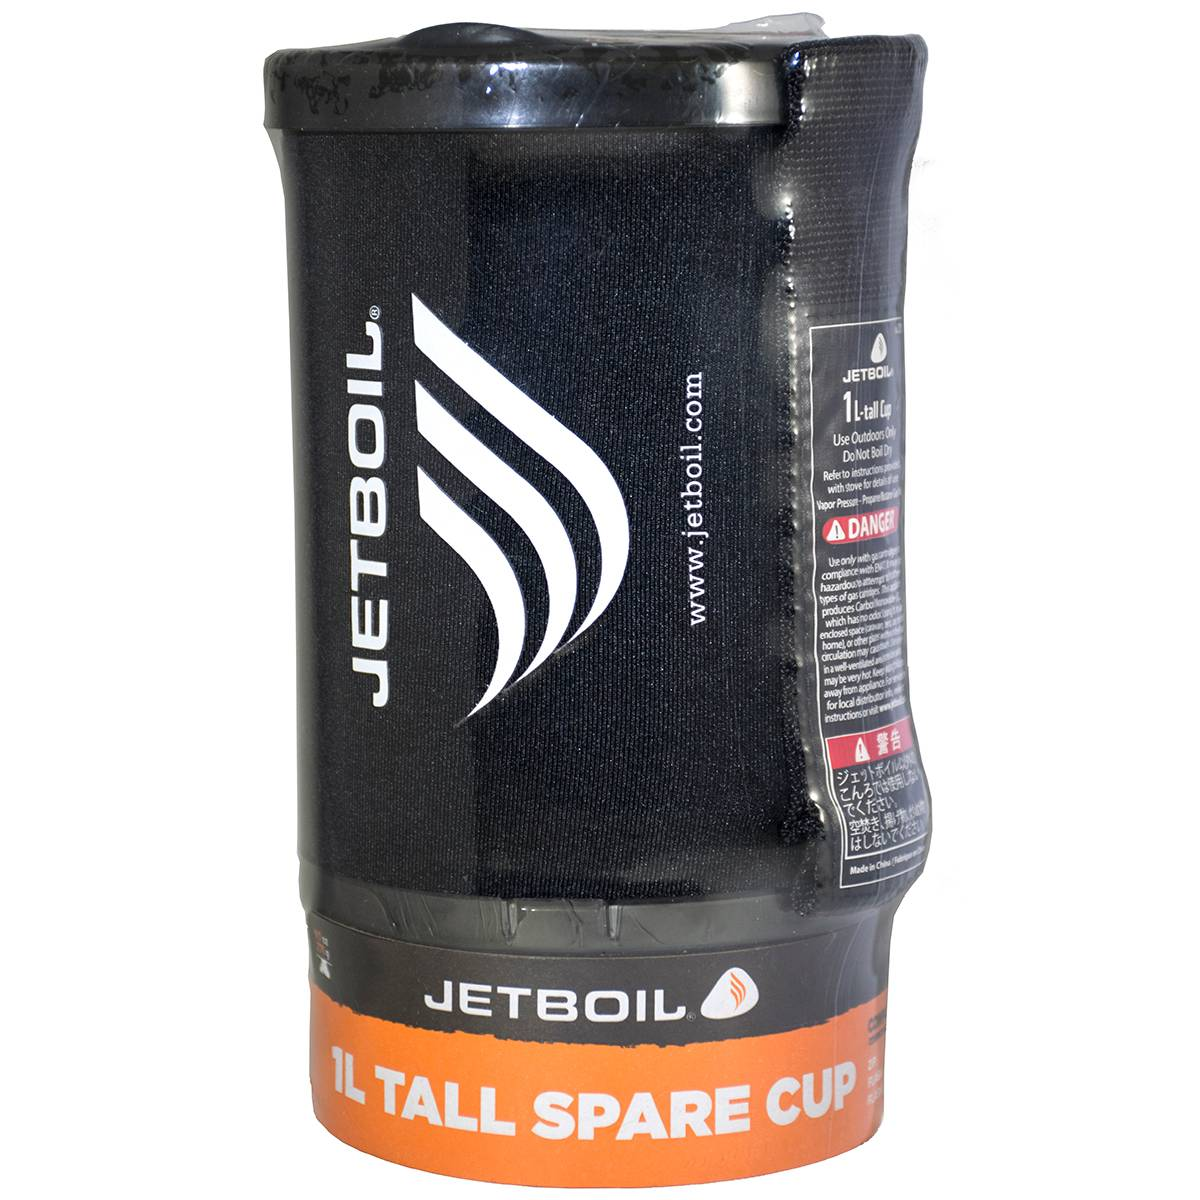 Jetboil 1.0 L Tall Spare Cup